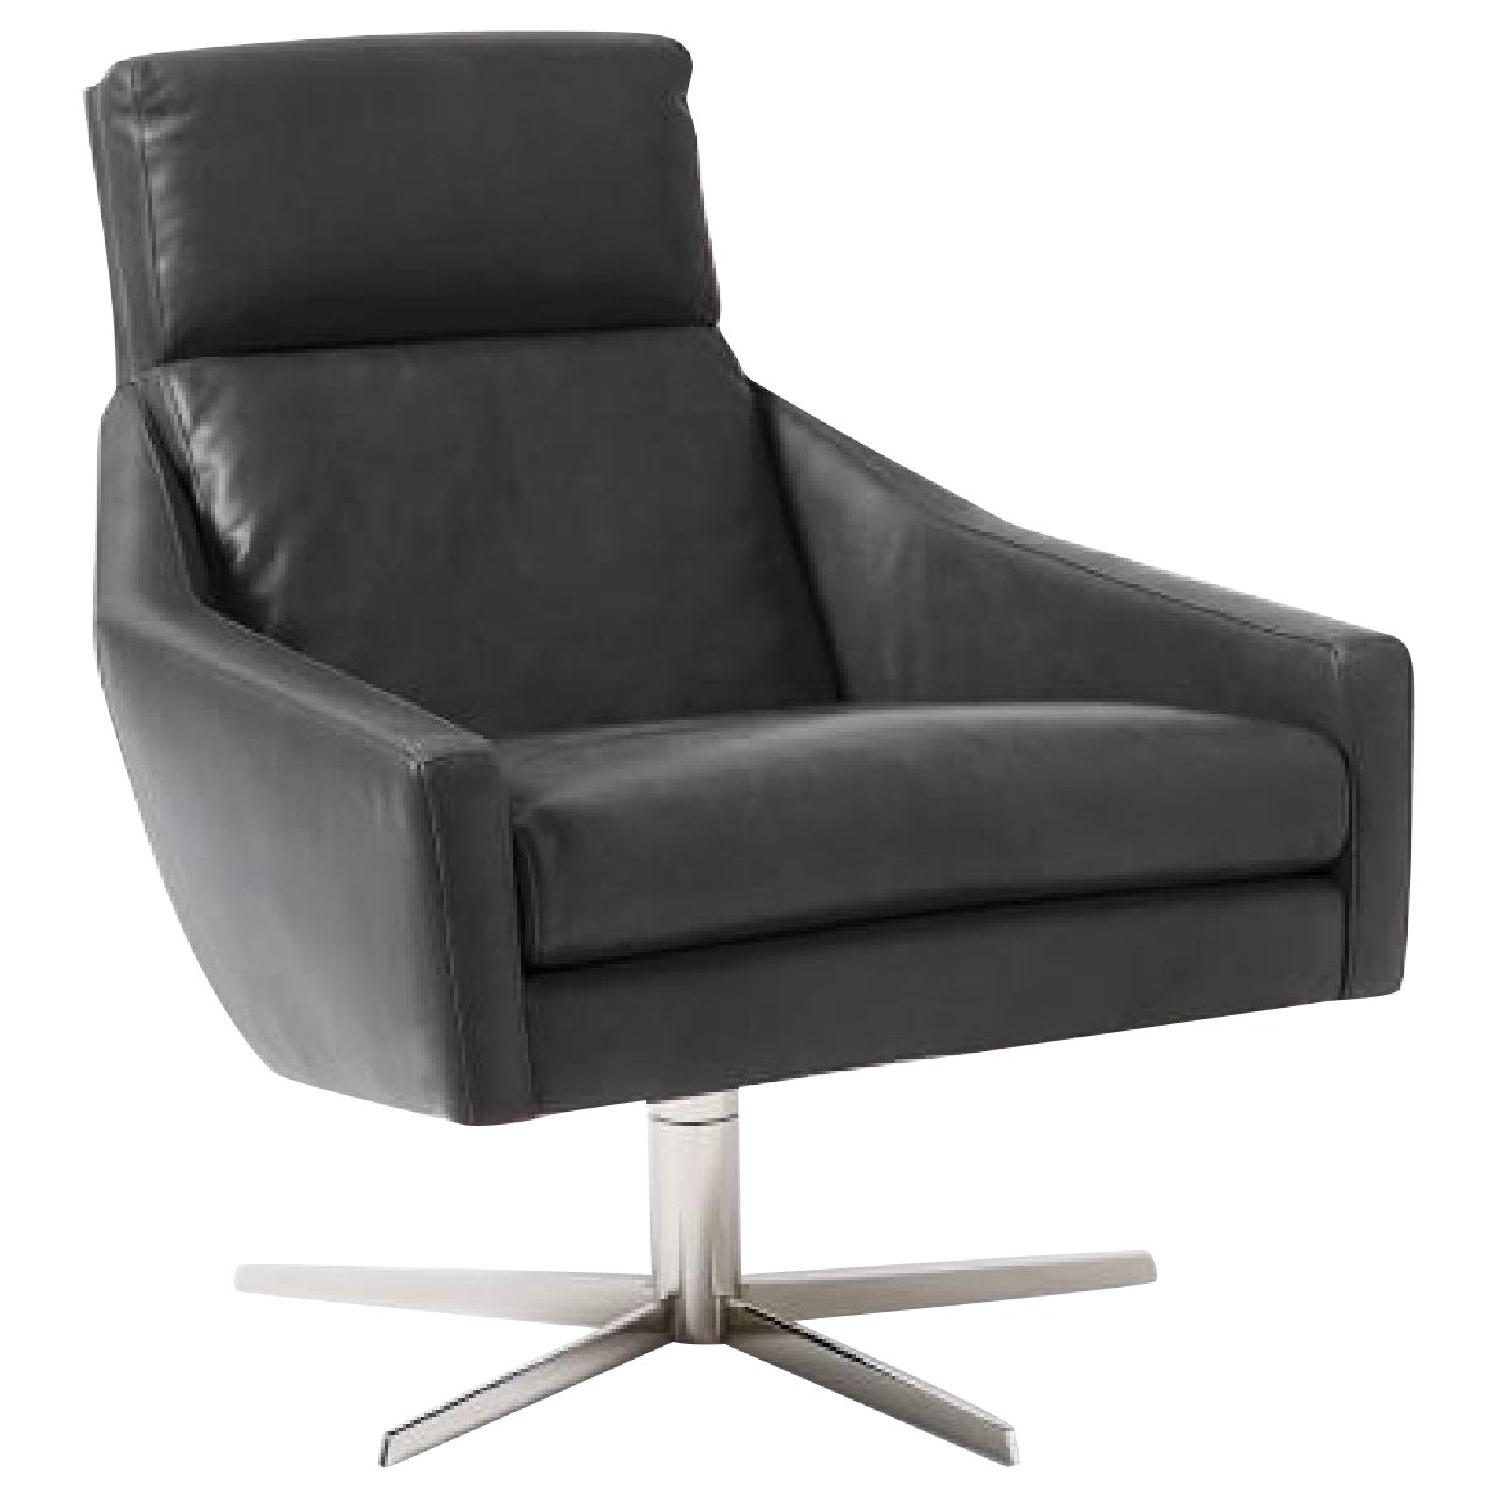 West Elm Austin Leather Swivel Chair & Ottoman in Charcoal